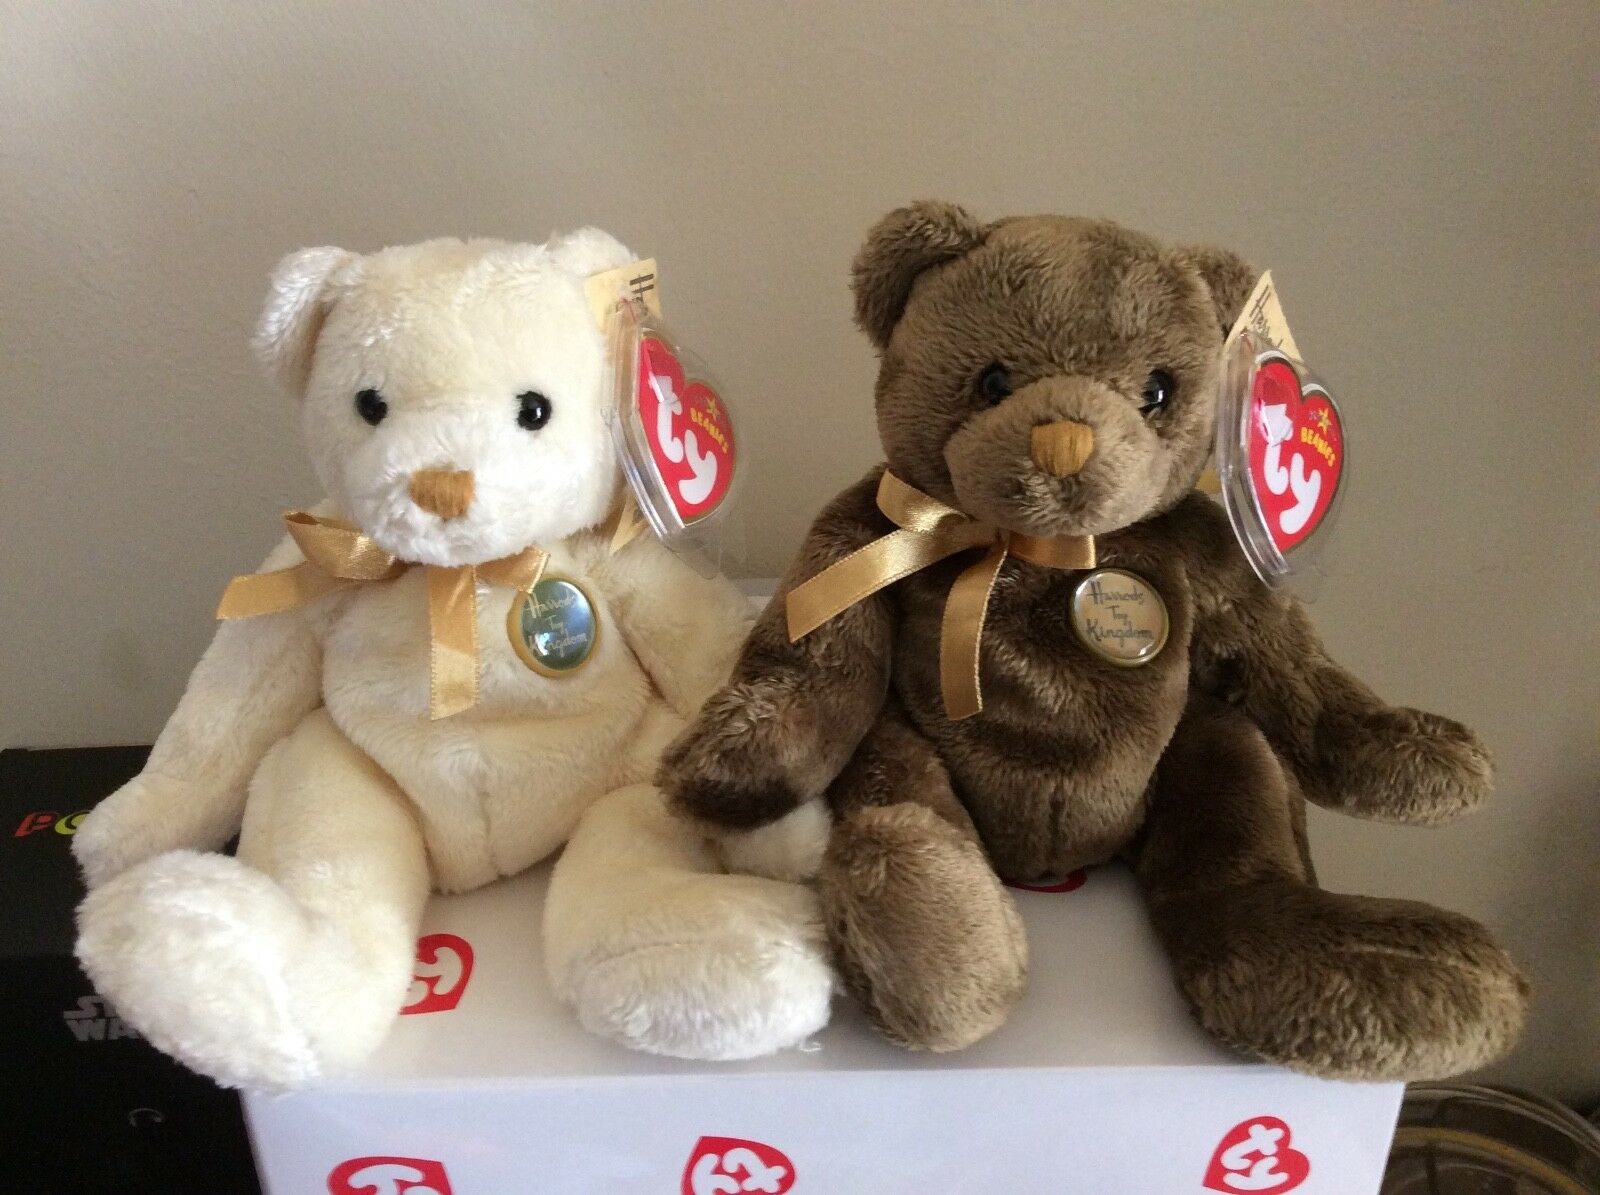 Ty beanie baby bears charles und henry uk exclusives mwmts